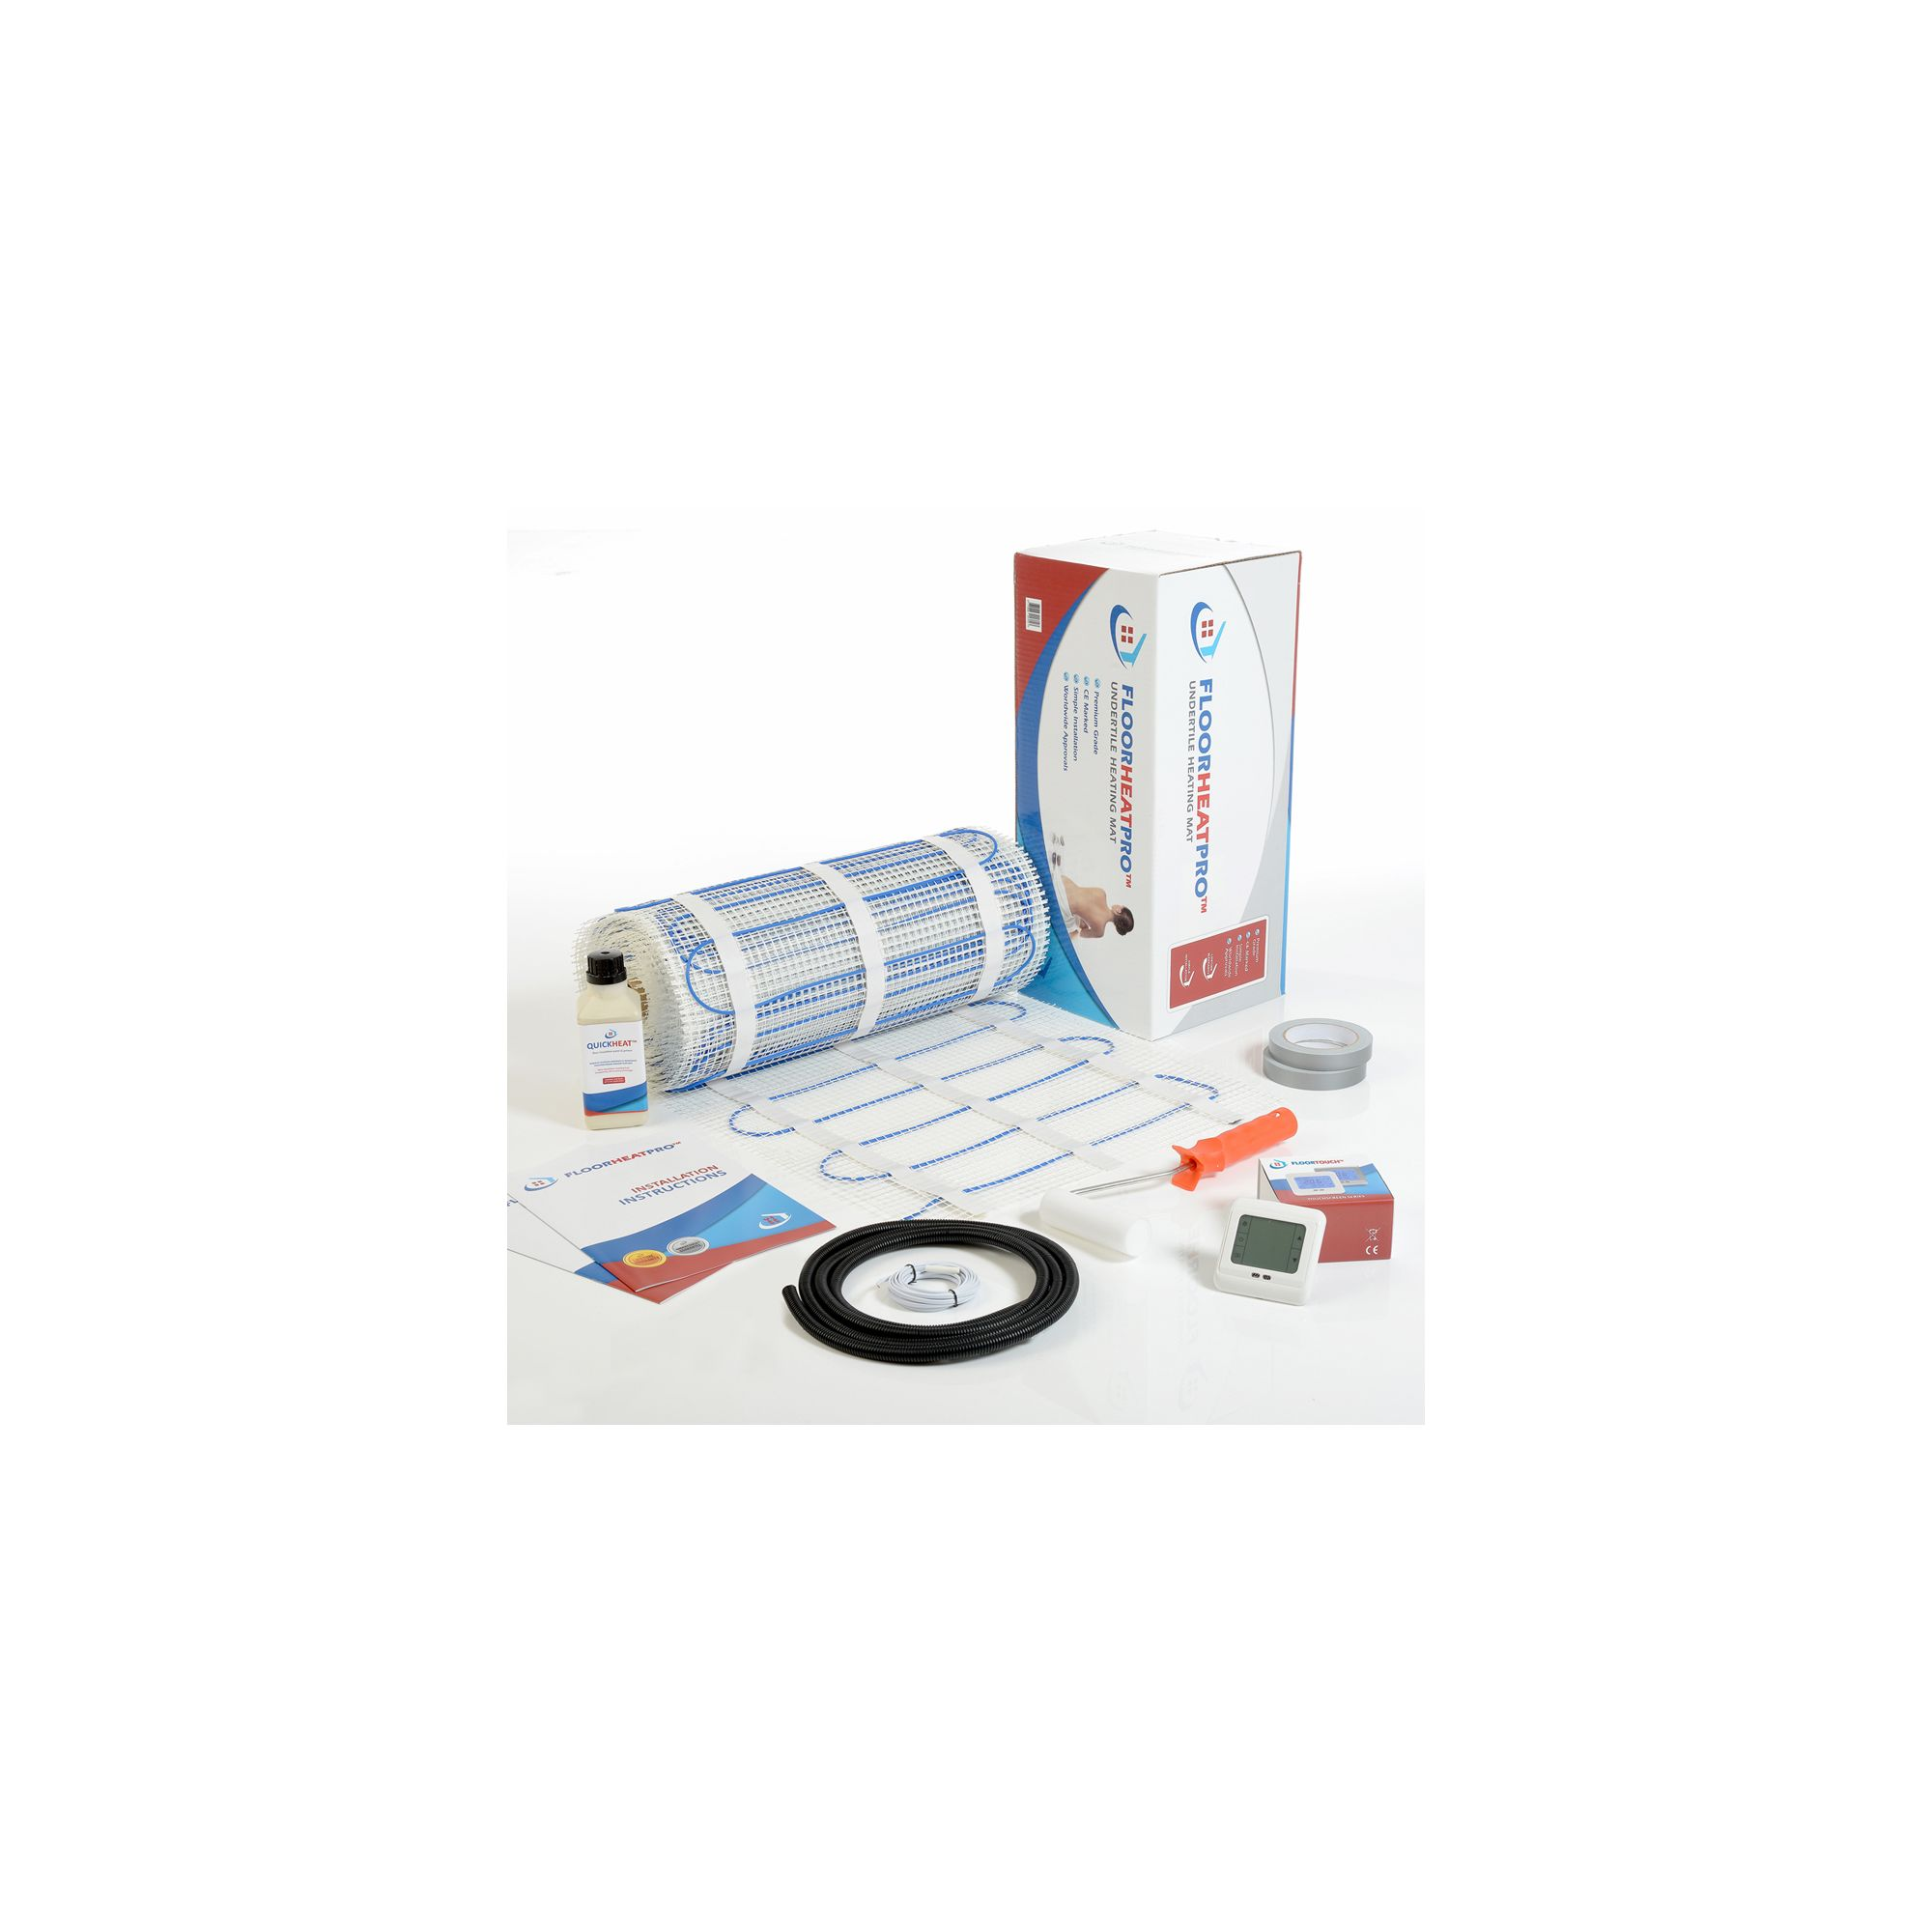 15.0m2 - Underfloor Electric Heating Kit 150w/m2 - Tiles at Tescos Direct